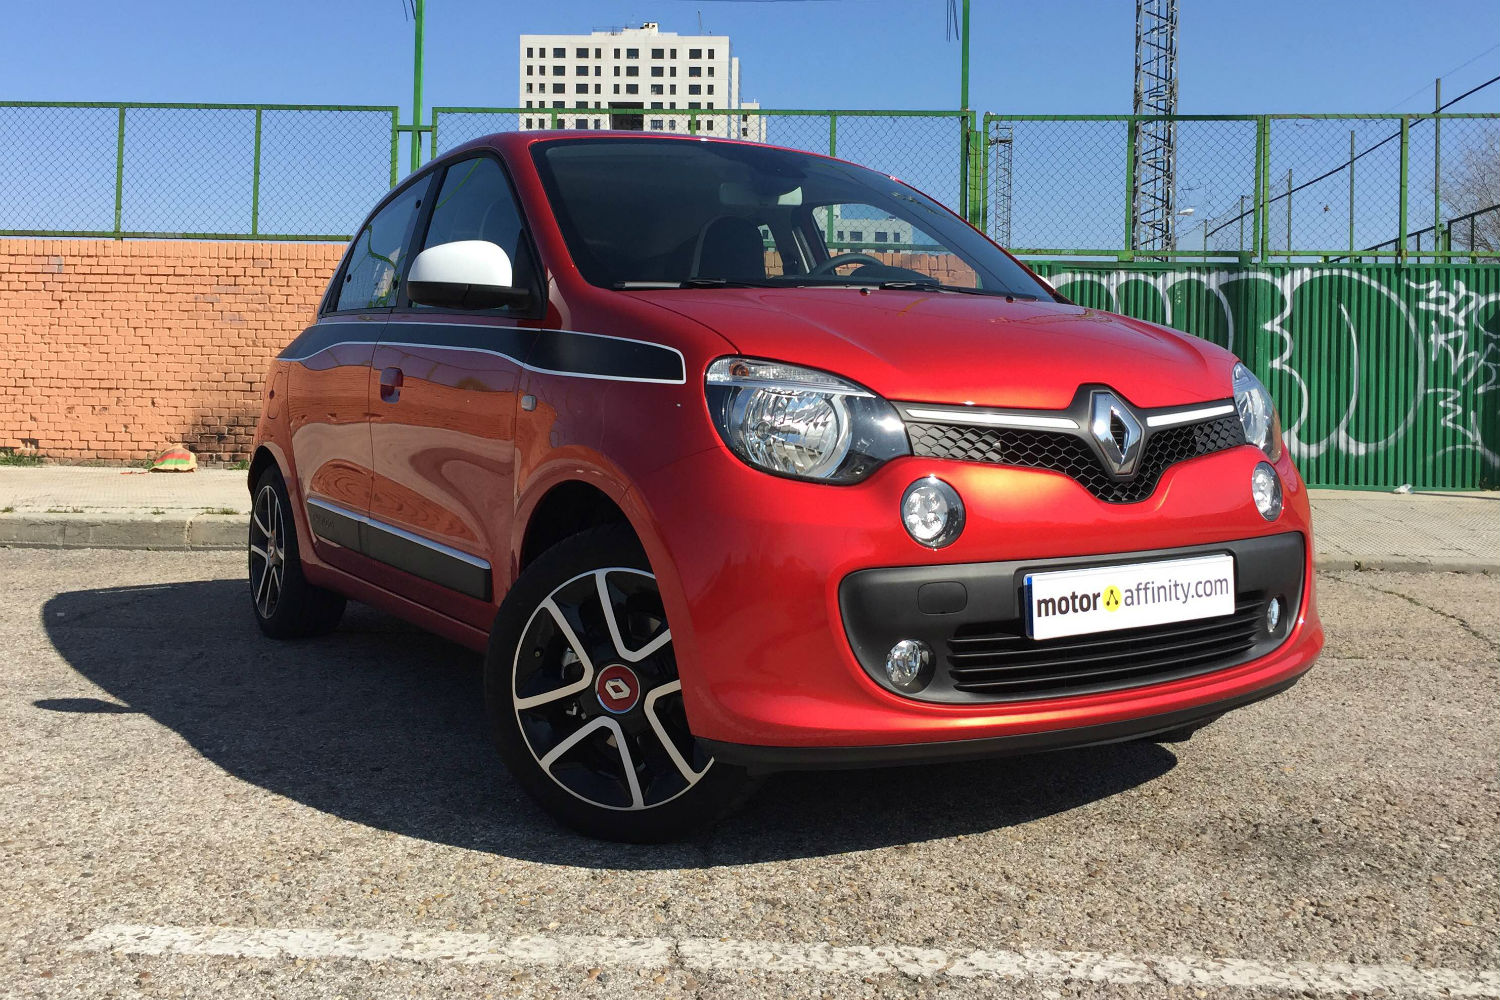 prueba del renault twingo tce 90 edc. Black Bedroom Furniture Sets. Home Design Ideas